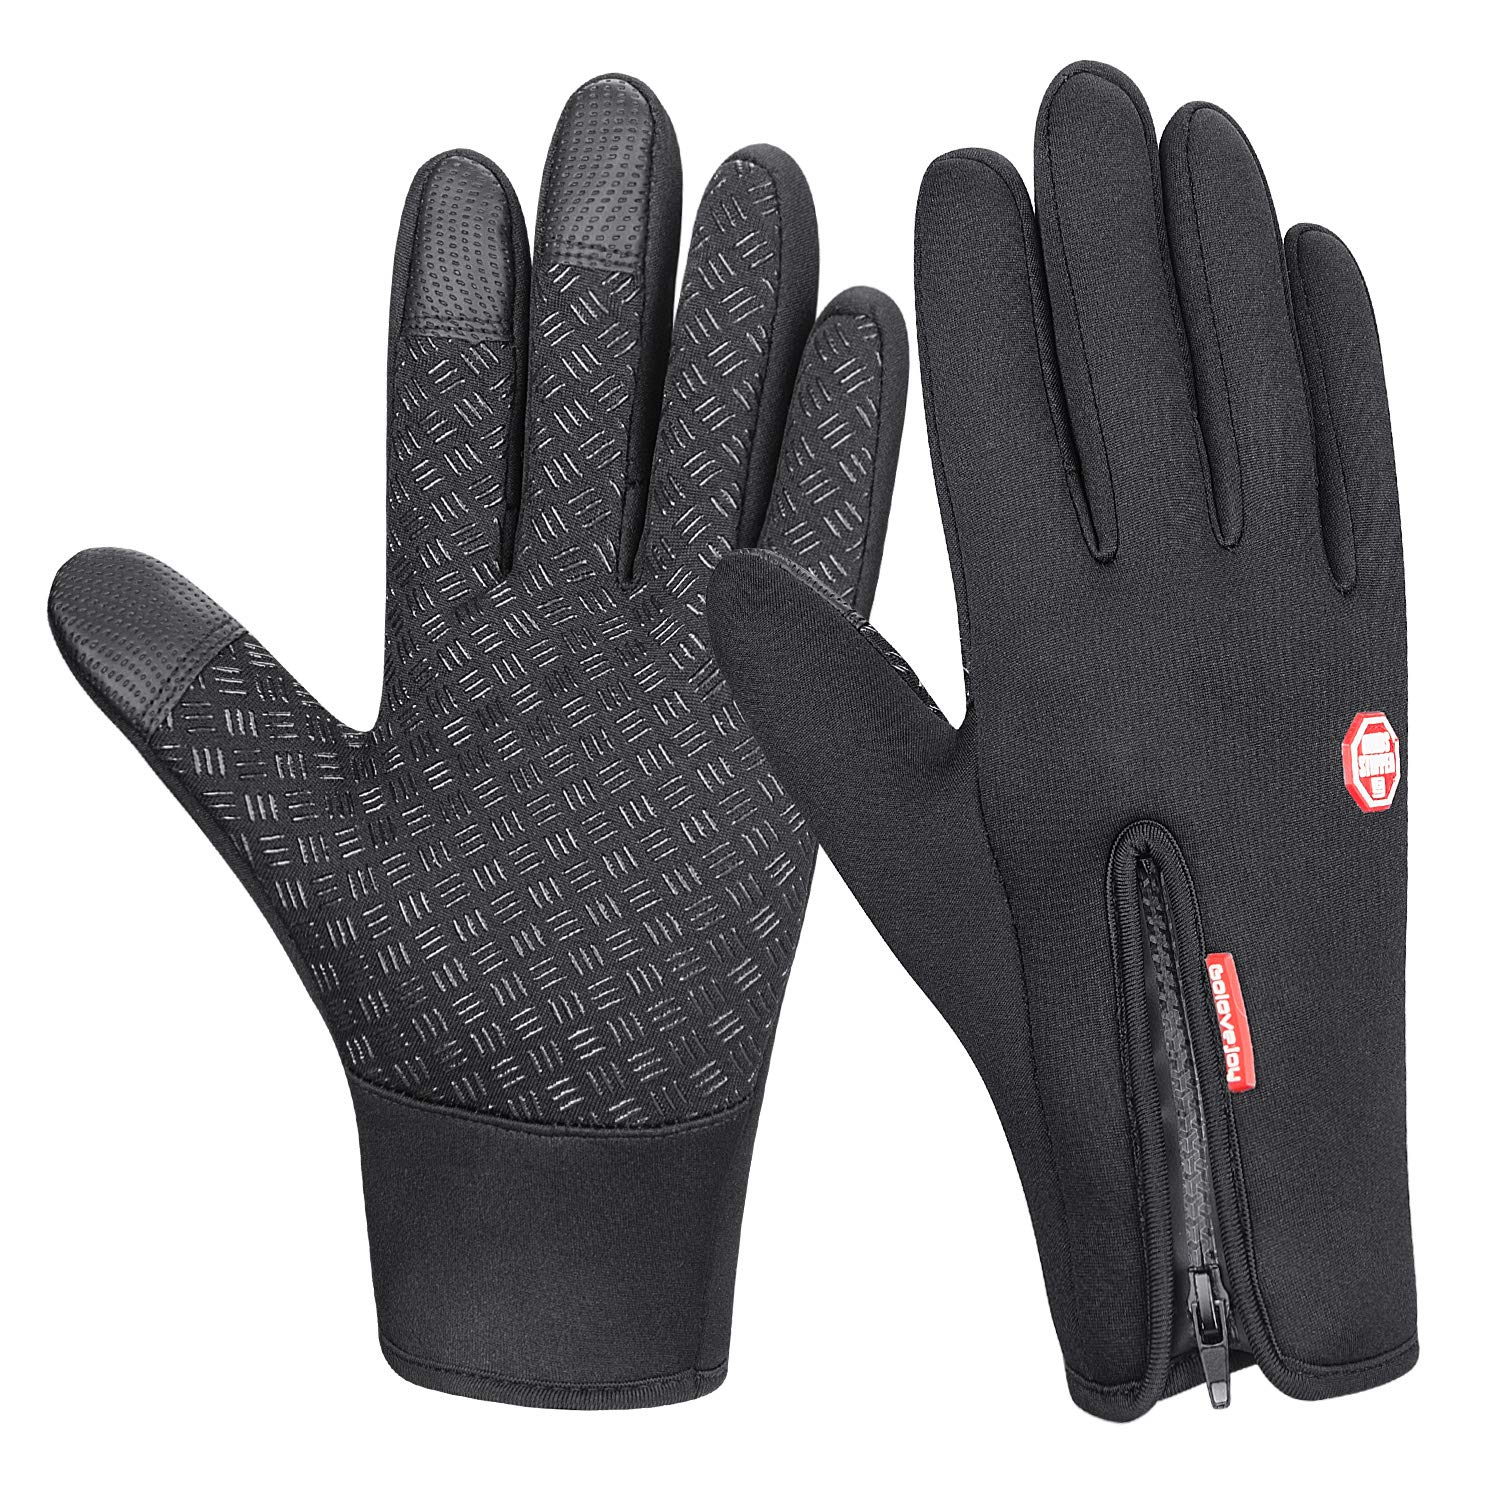 FengNiao Winter Gloves Touchscreen Windproof Thermal Gloves Men Women Cycling Running Climbing Skiing Driving Gloves